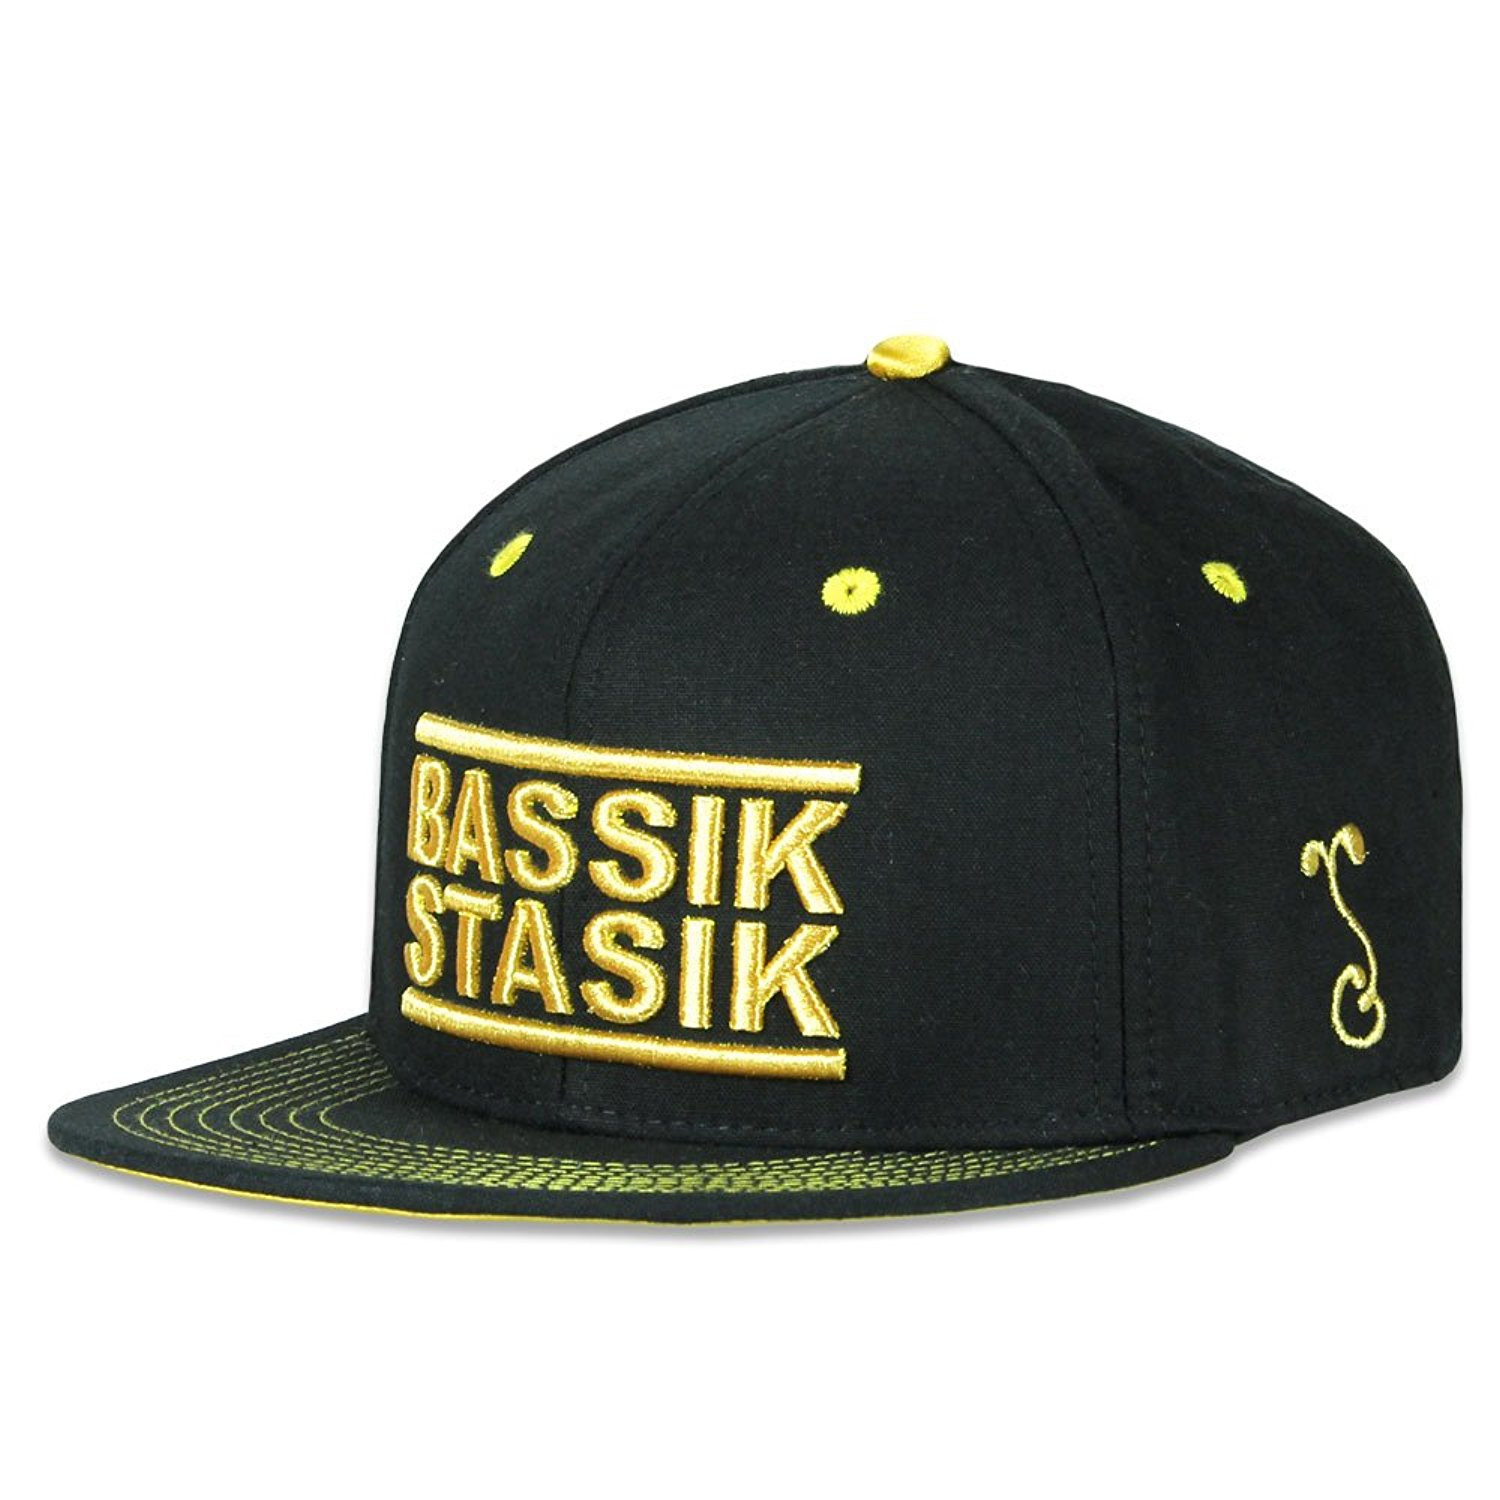 ab4151885f0 Get Quotations · Grassroots California Bassik Stasik 2017 Snapback